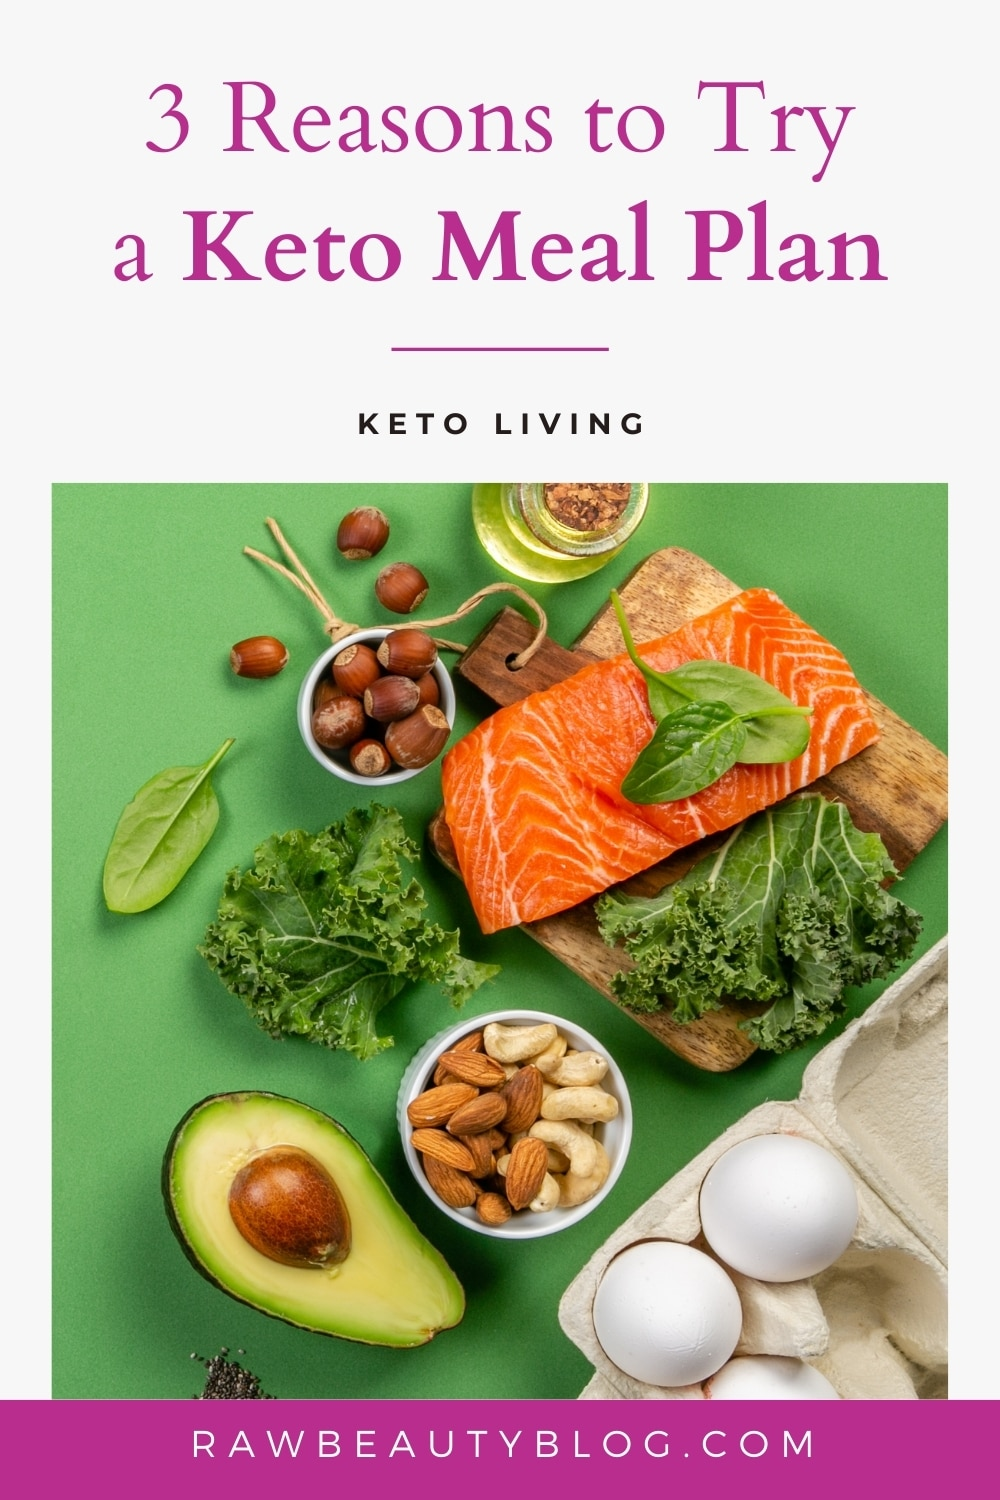 3 Reasons to Try a Keto Meal Plan to Shed Excess Pounds